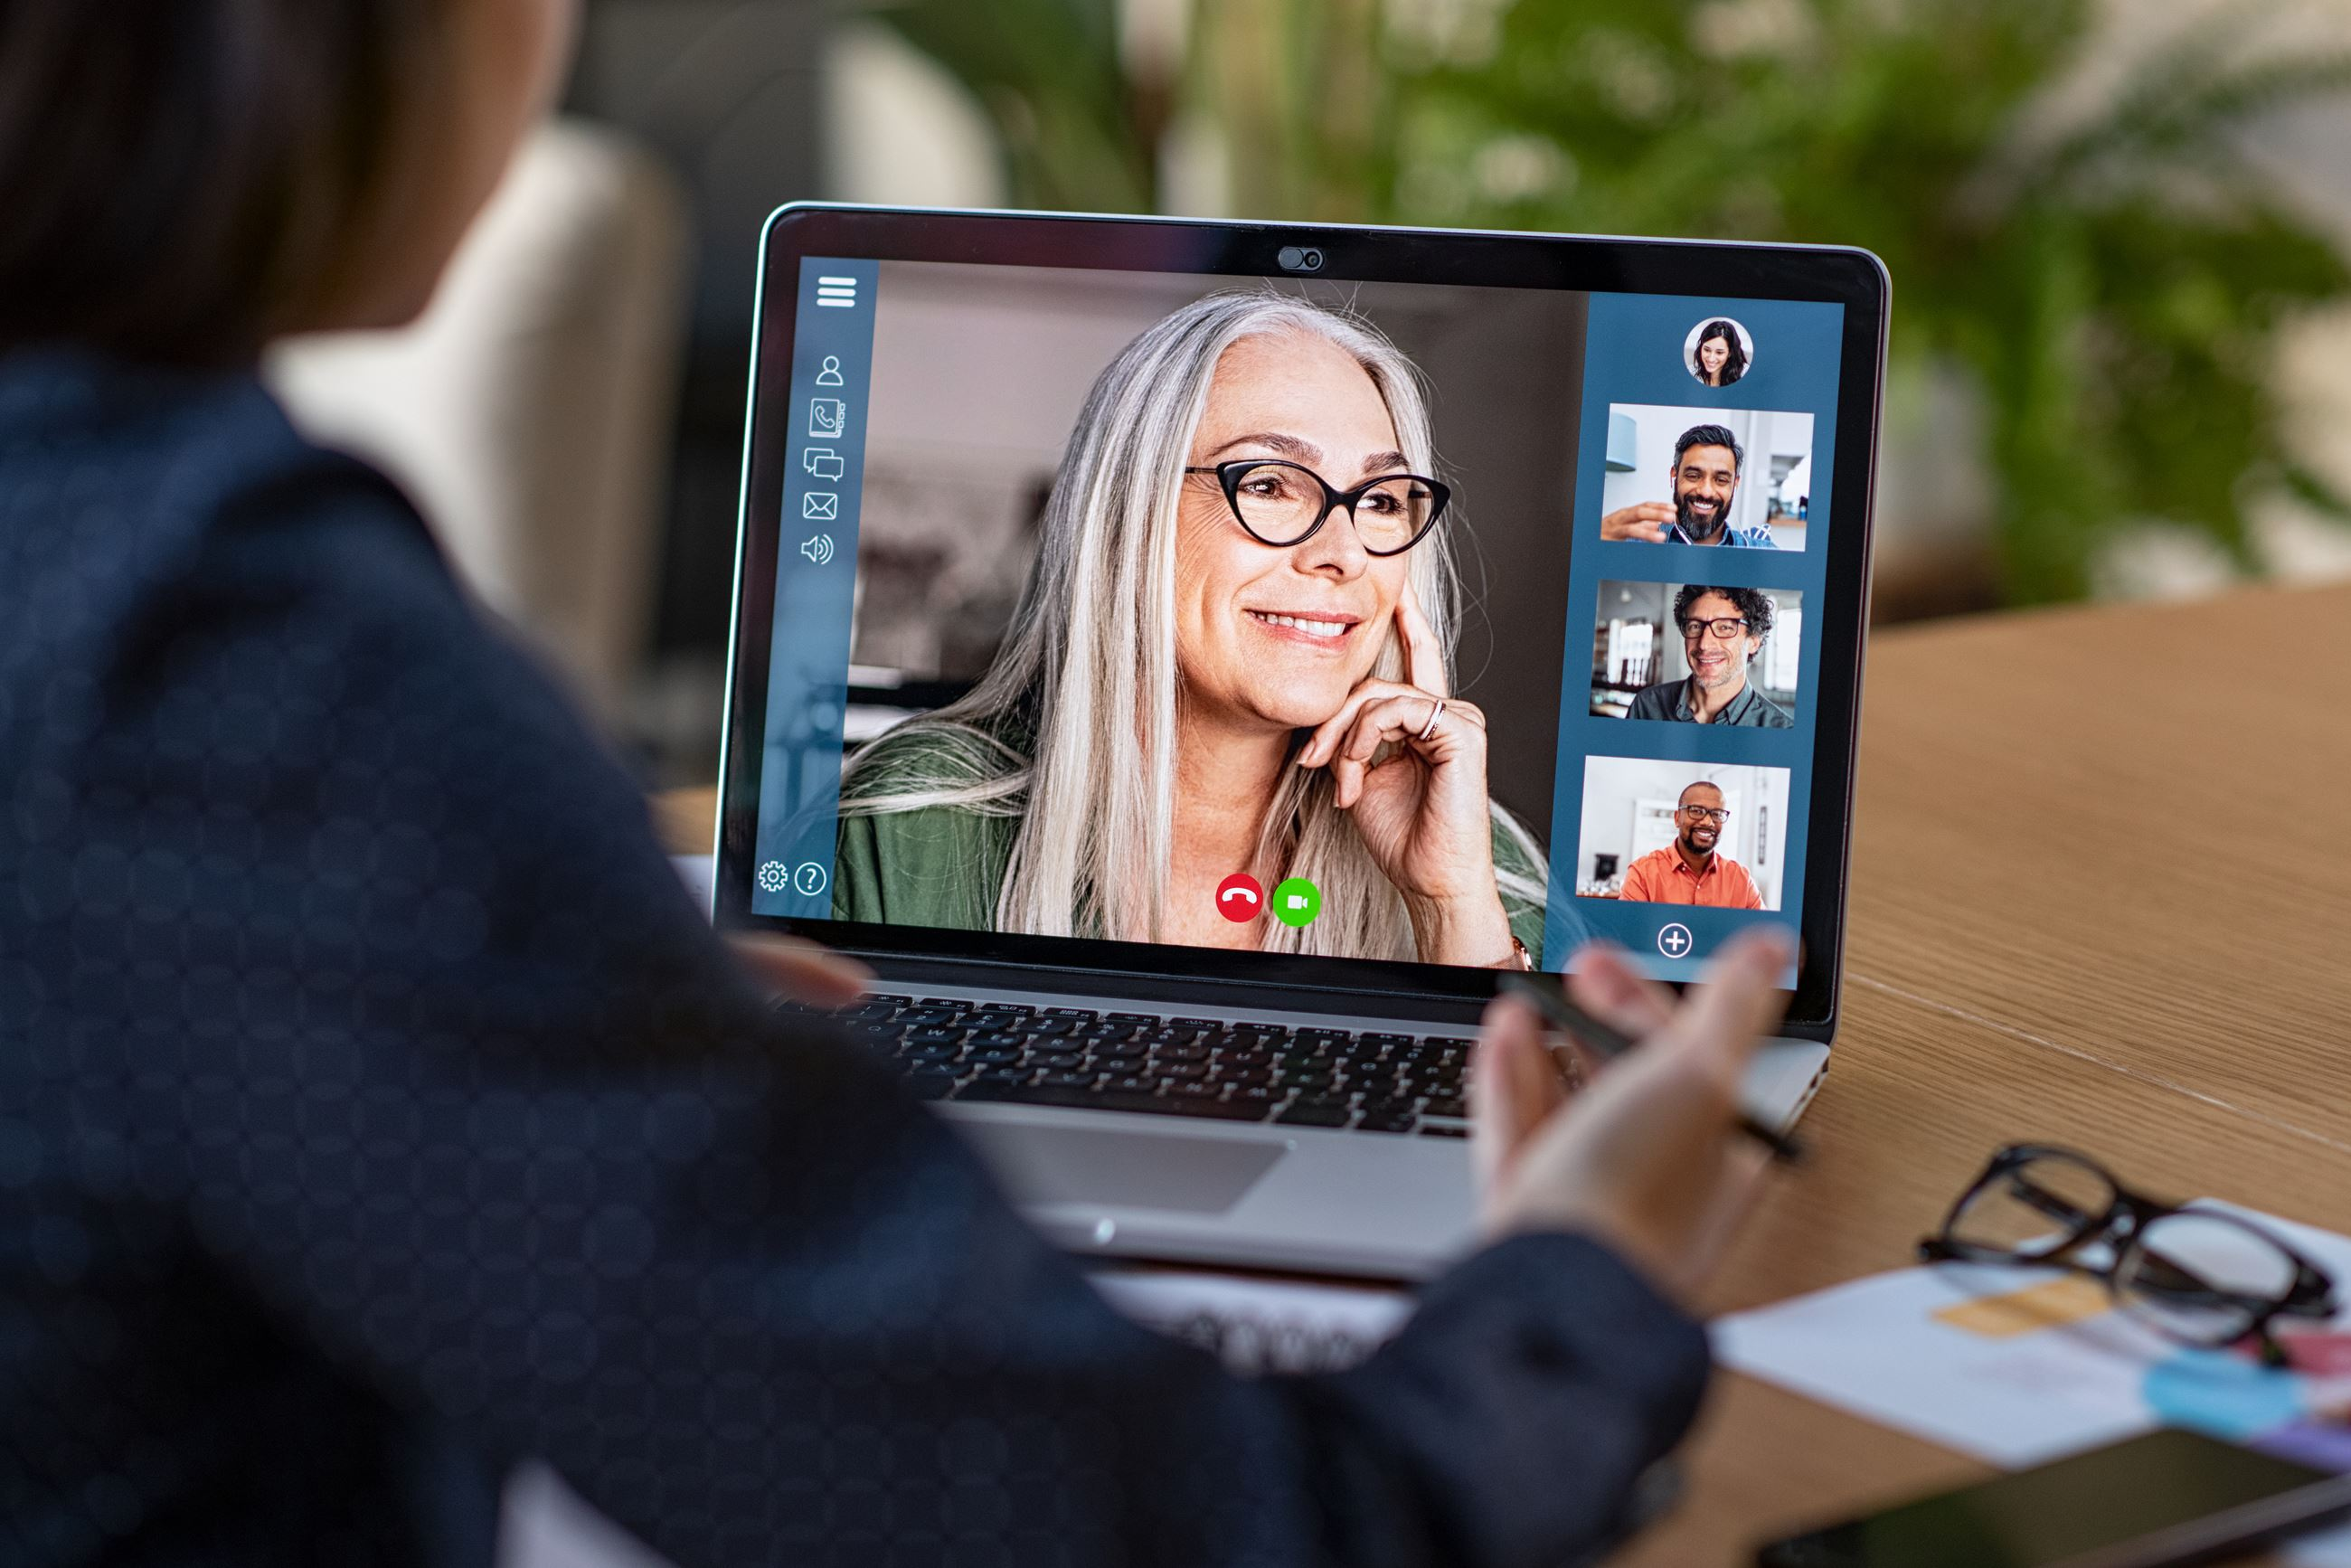 Virtual meeting with a woman on a computer screen